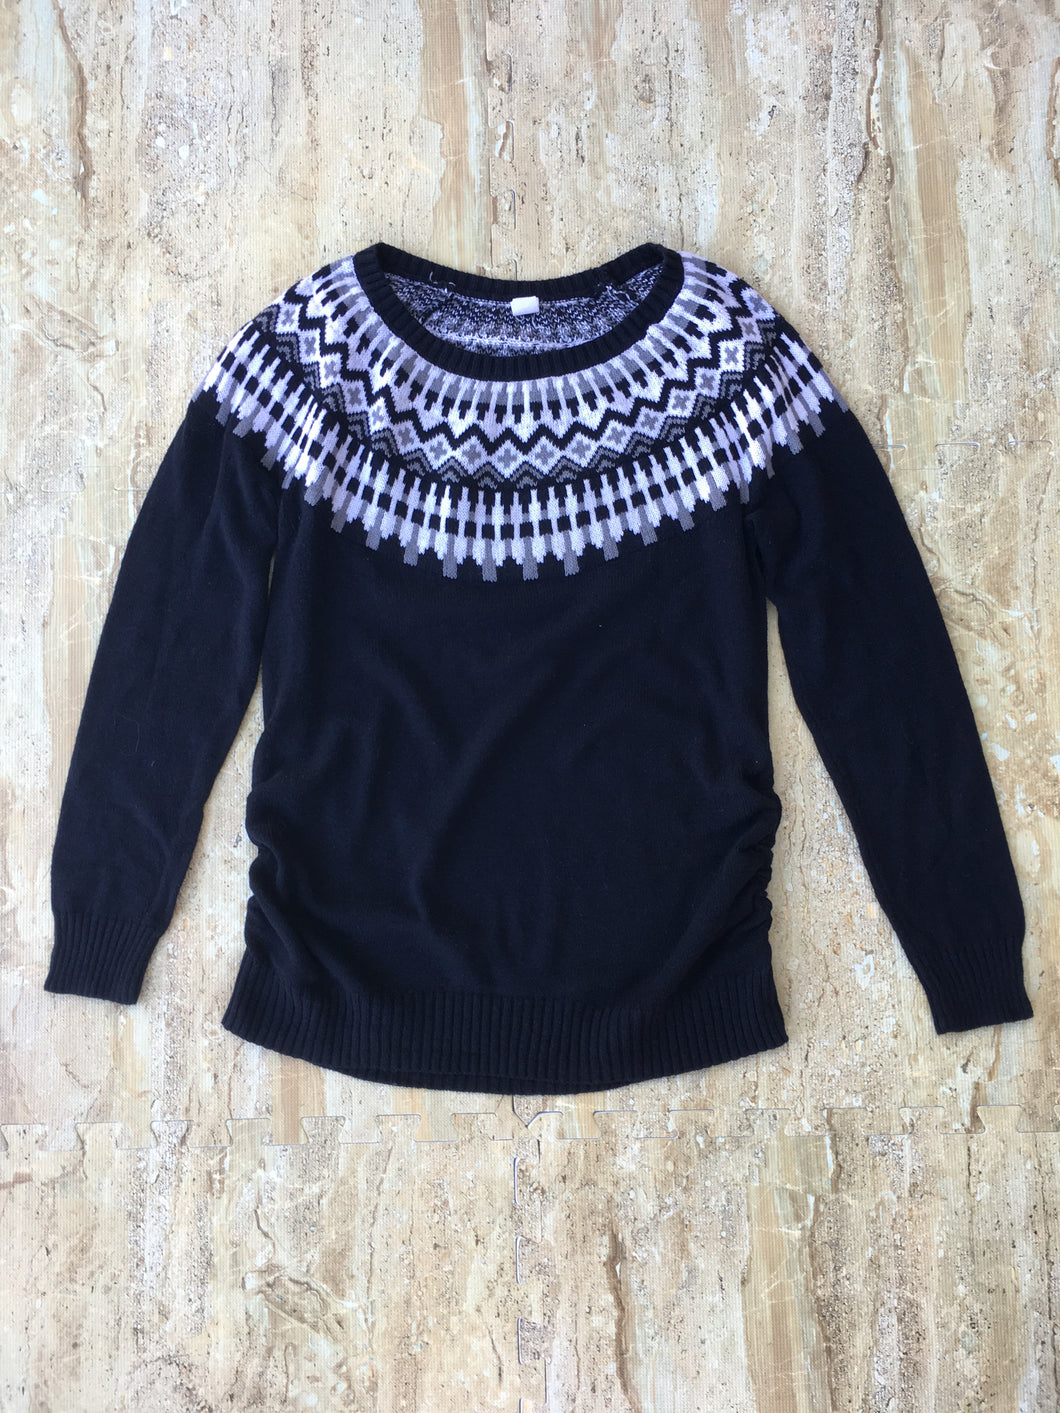 Patterned Knit Sweater (S)